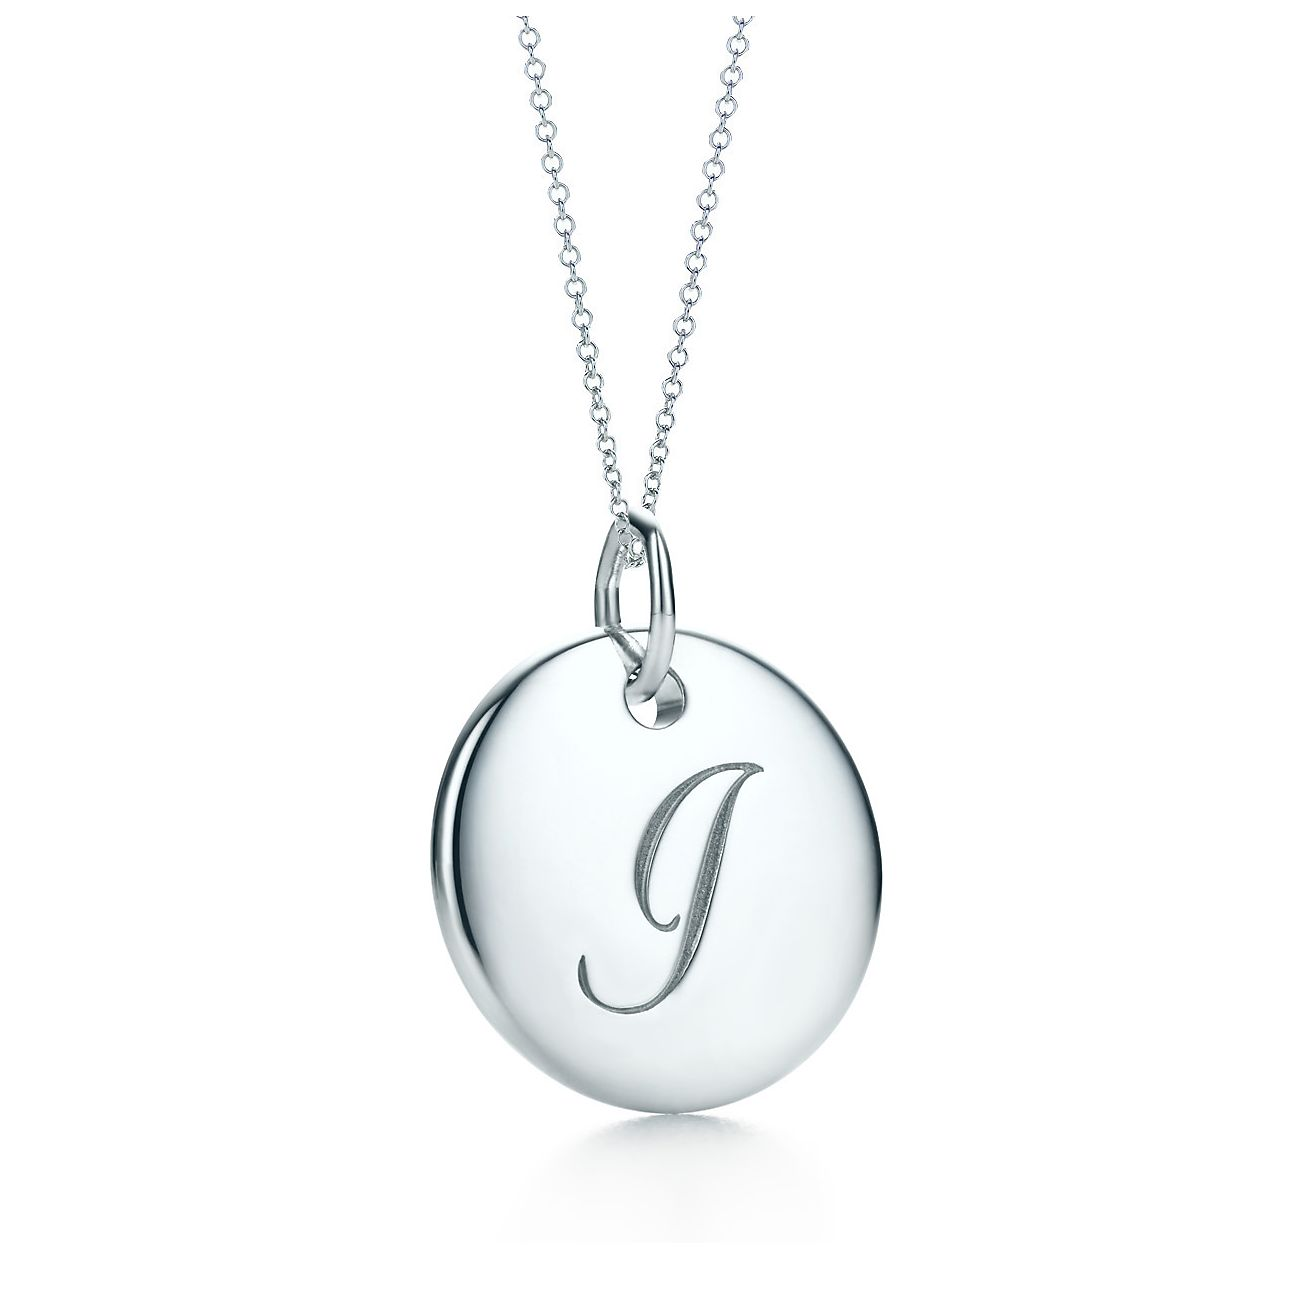 a784927d21f5 Tiffany Notes alphabet disc charm in silver on a chain. Letters A-Z  available.